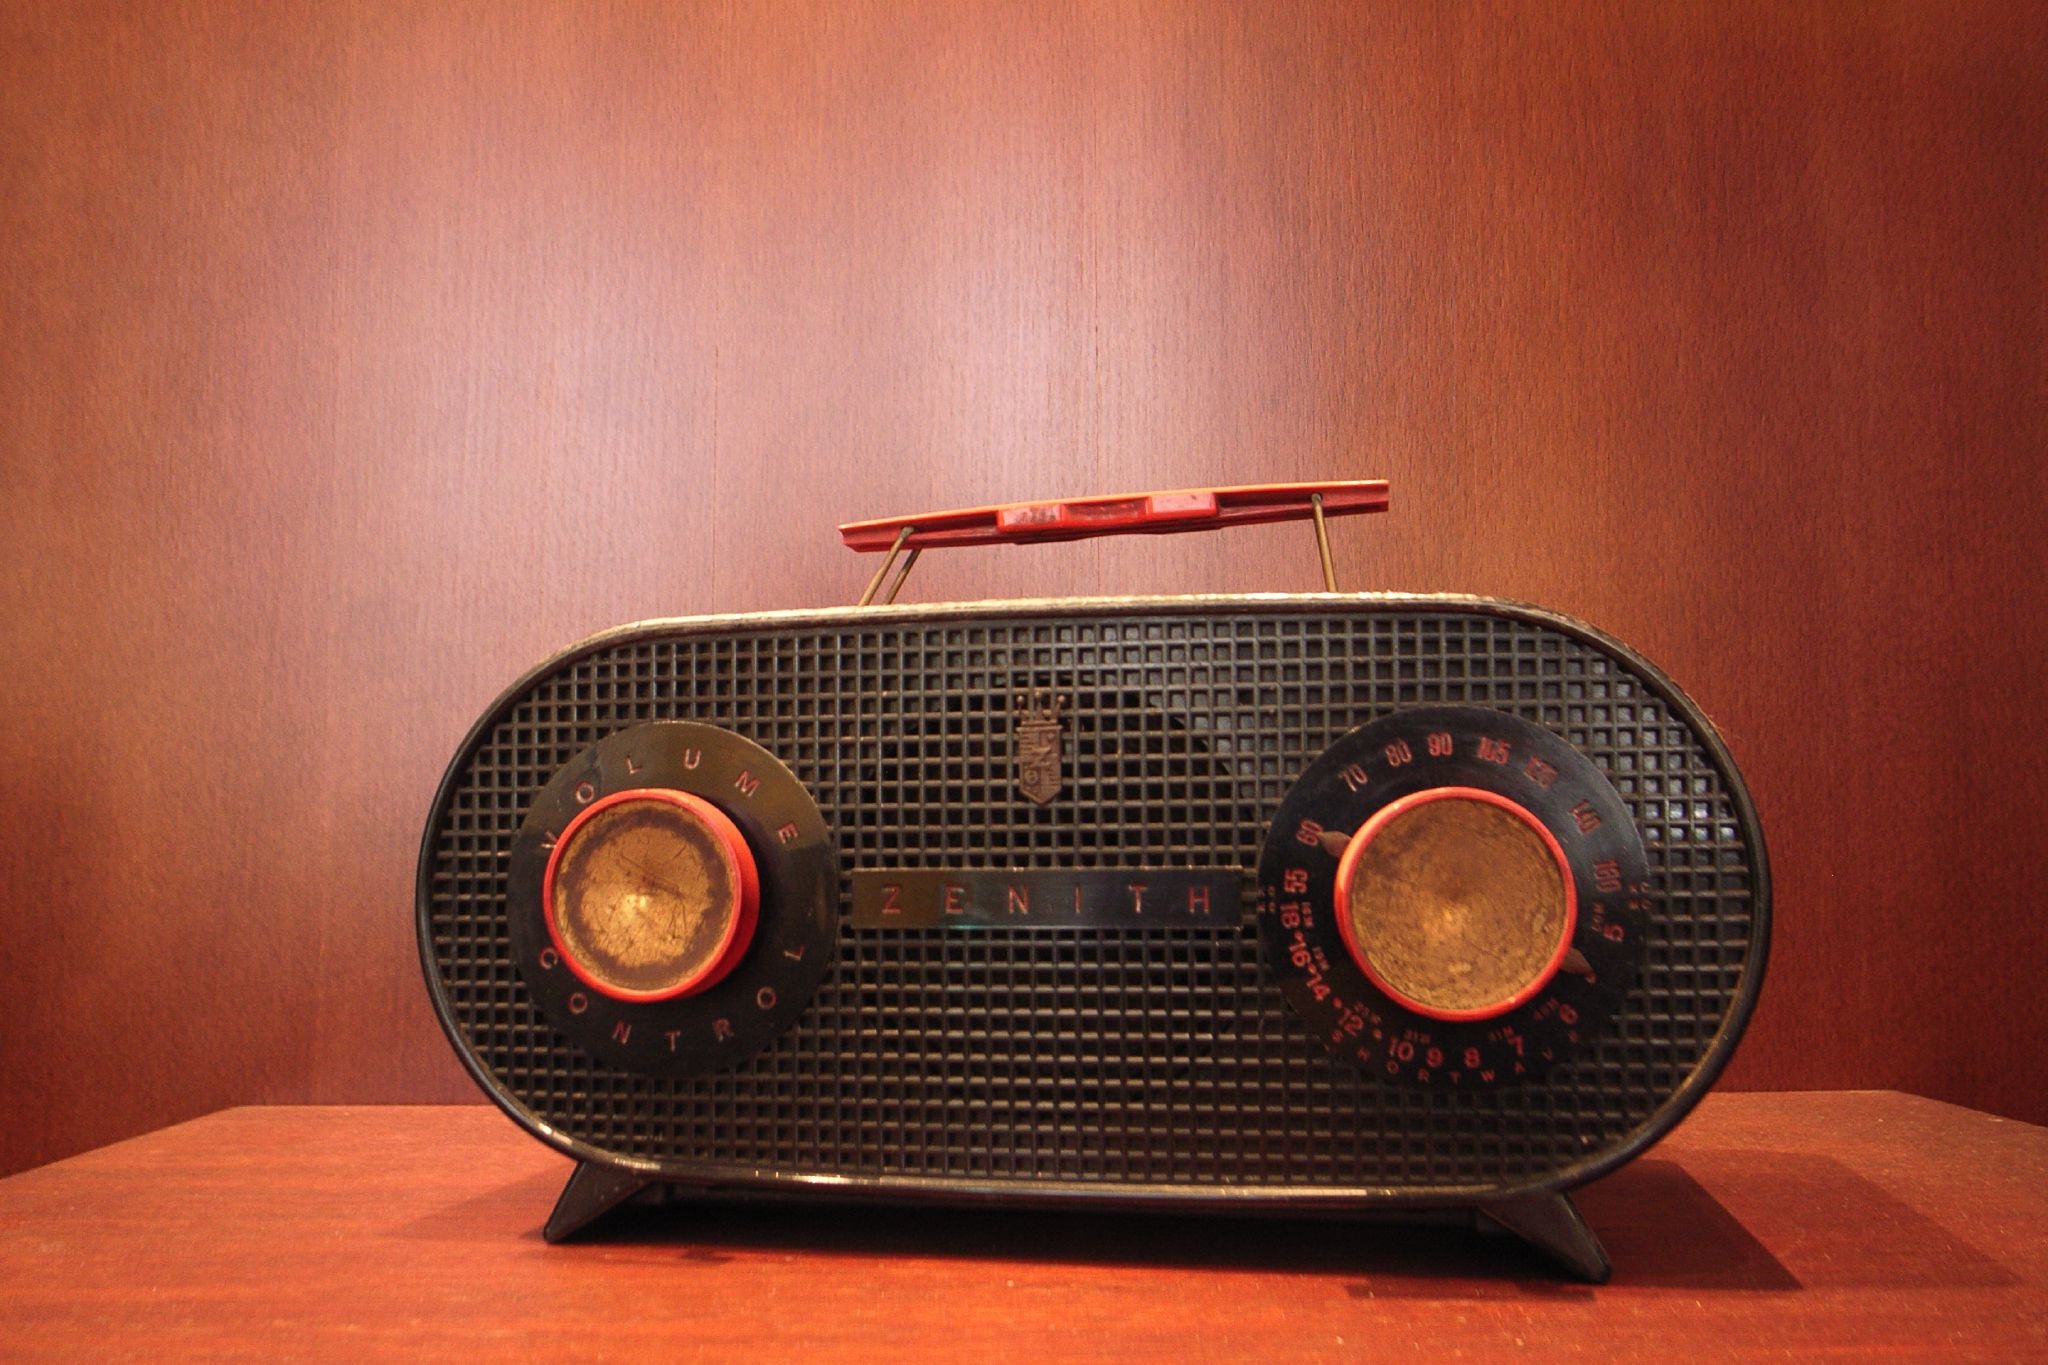 Old school radio with two knobs